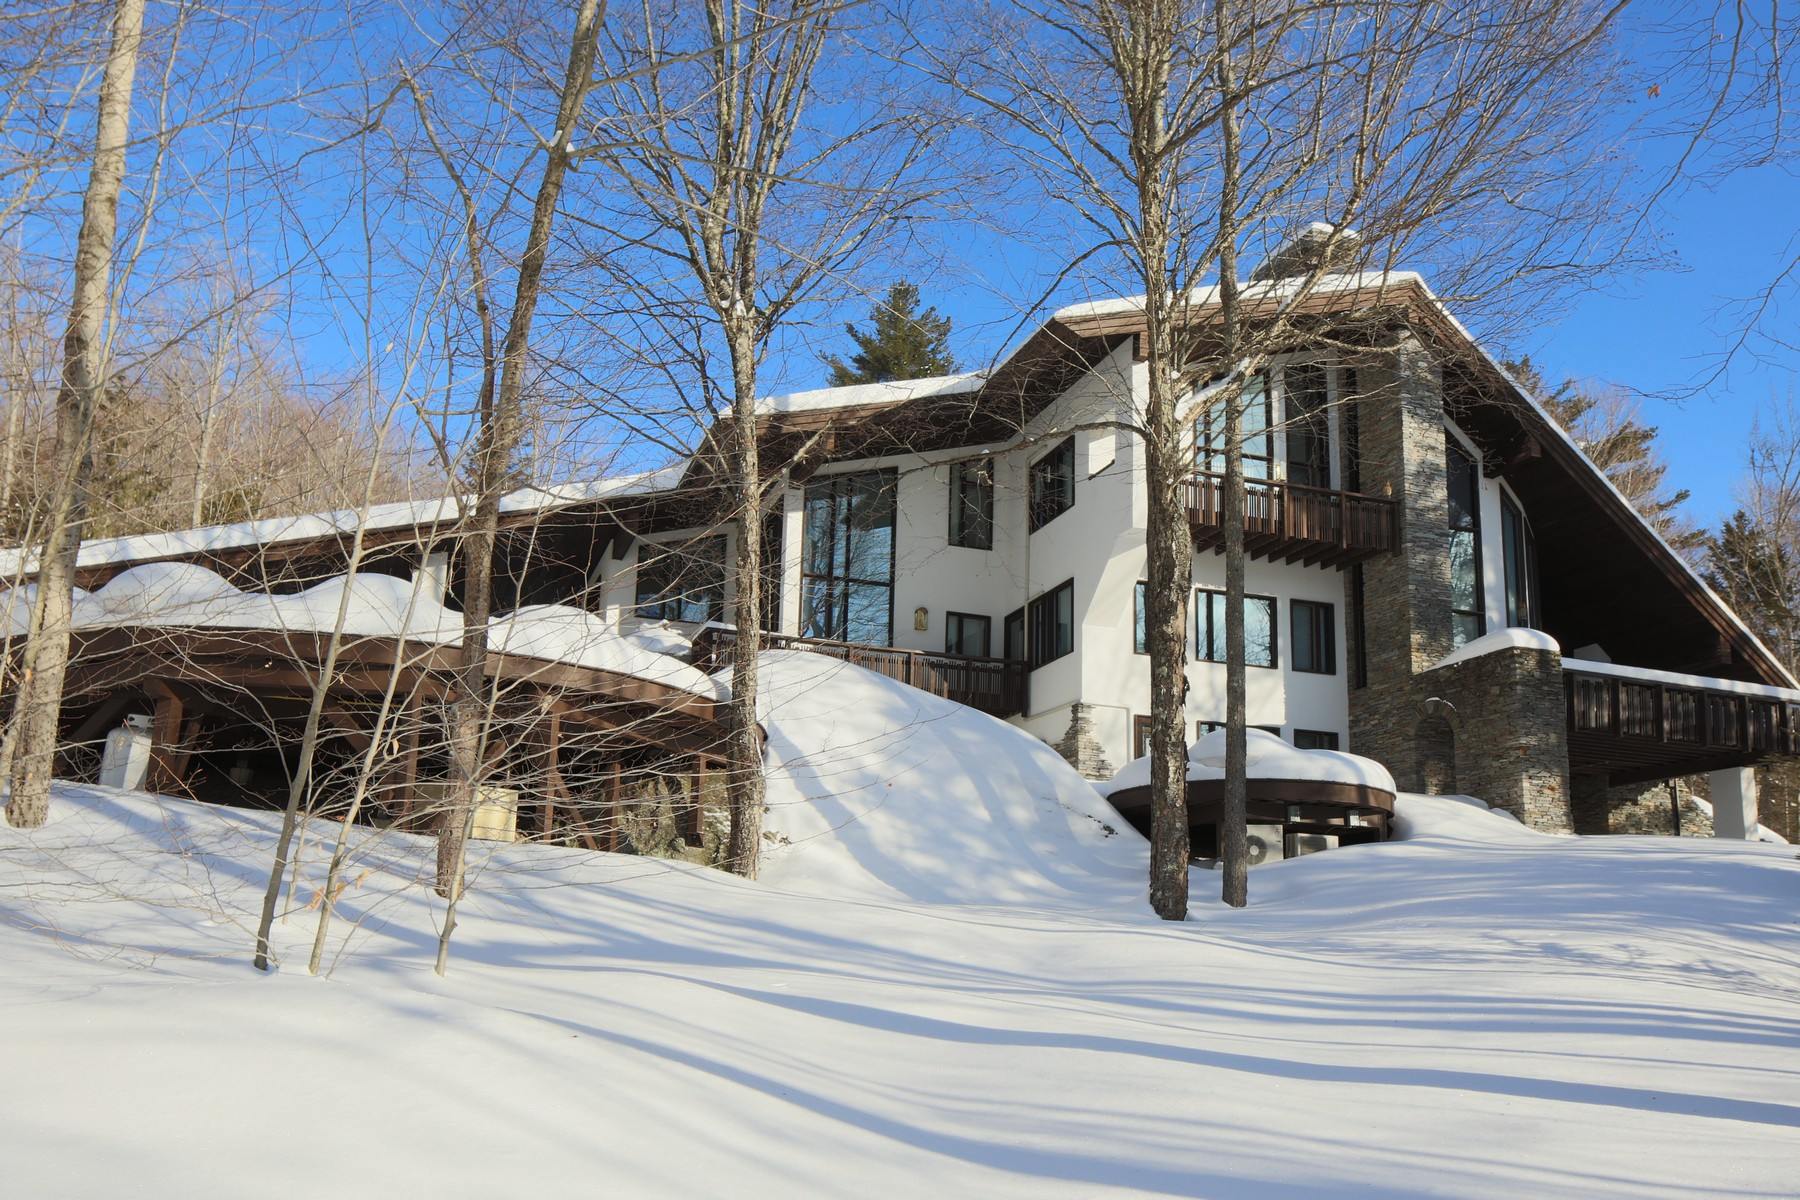 Casa Unifamiliar por un Venta en 138 Merlin Way, Plymouth Plymouth, Vermont, 05056 Estados Unidos